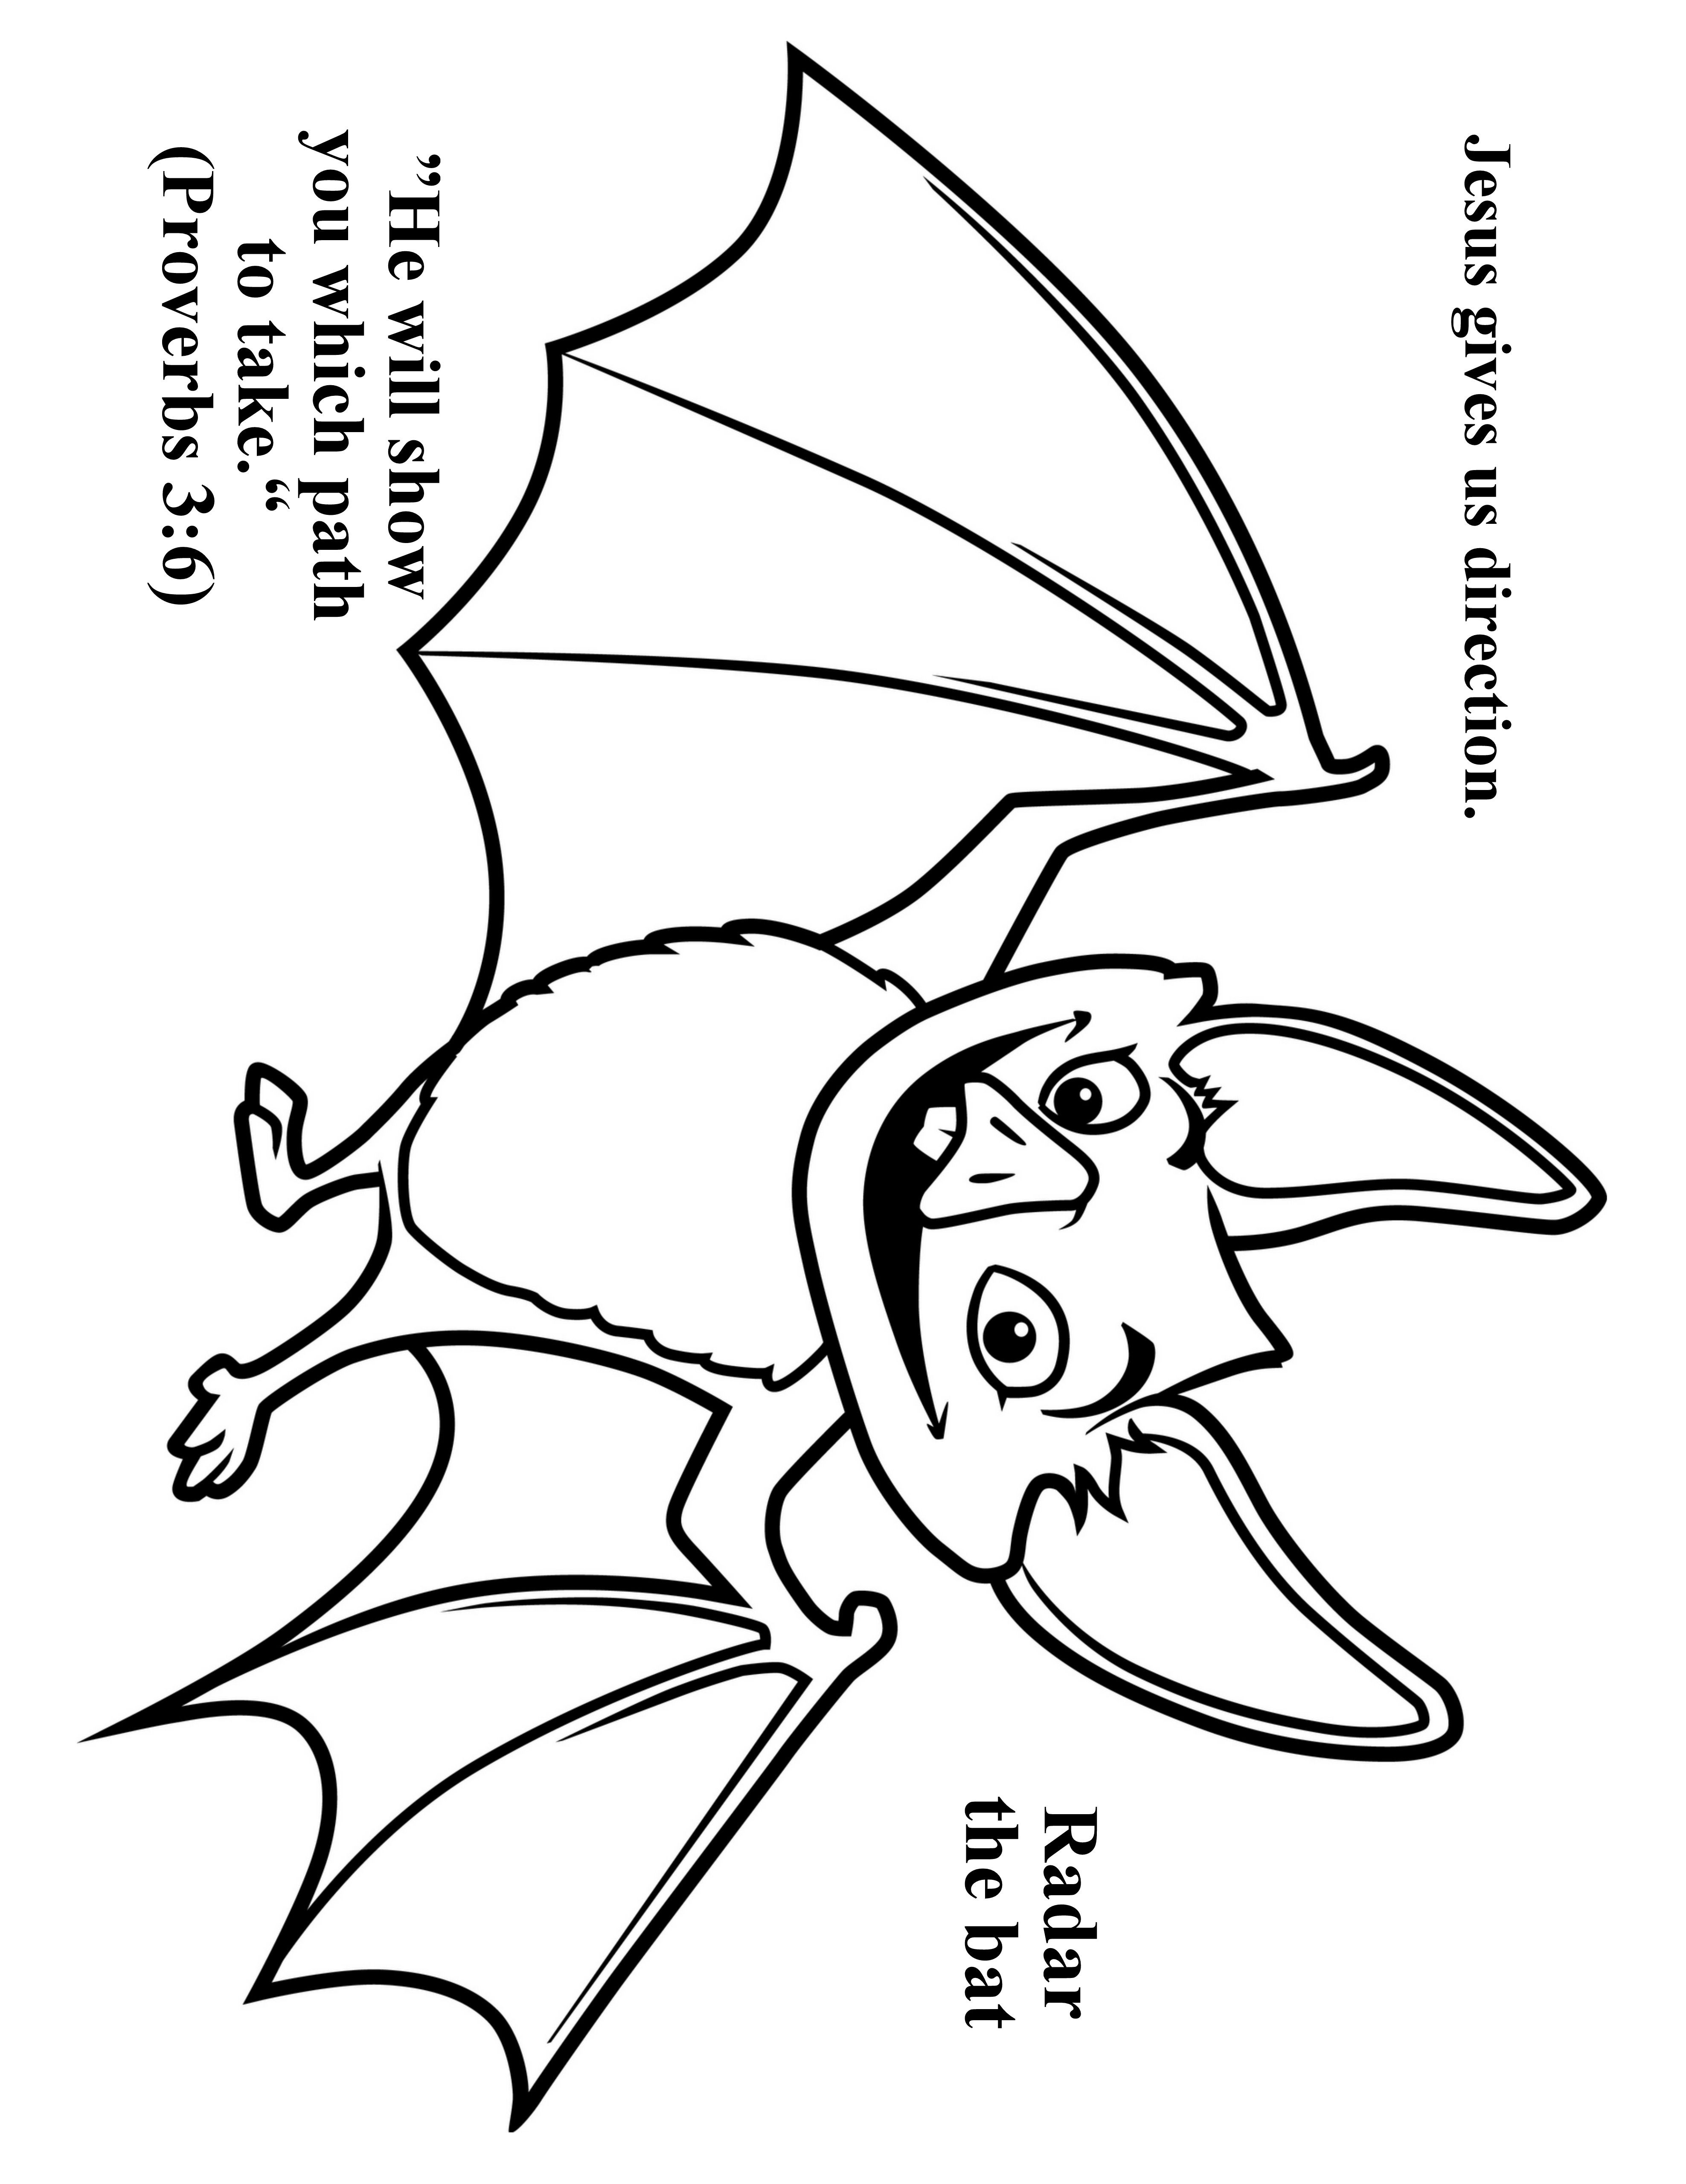 Cave Quest Day 3 Preschool Coloring Page Radar The Bat Sunday